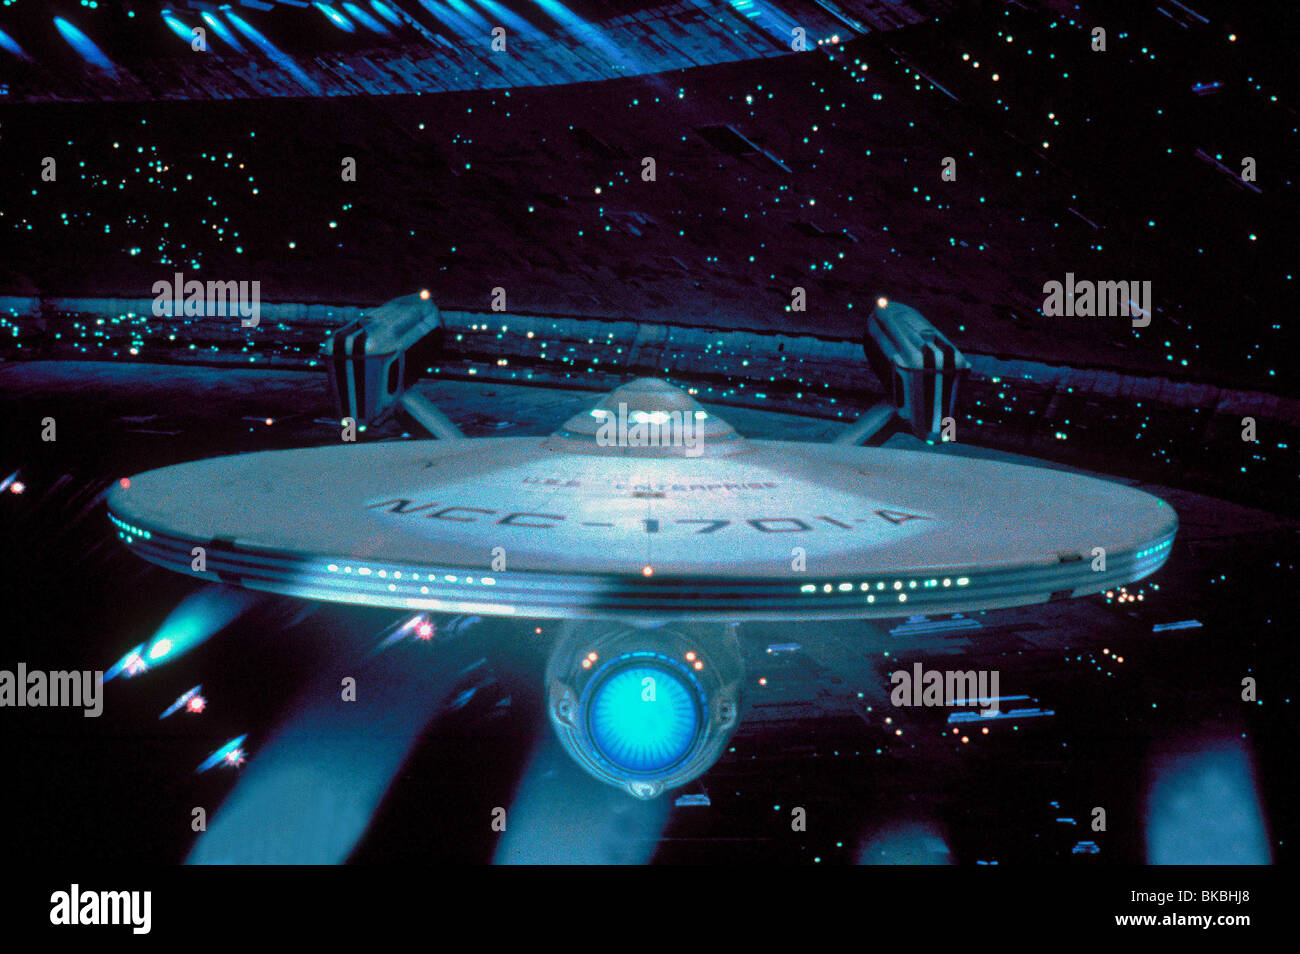 STAR TREK IV: THE VOYAGE HOME (1986) 'USS ENTERPRISE' ST4 027 Stock Photo